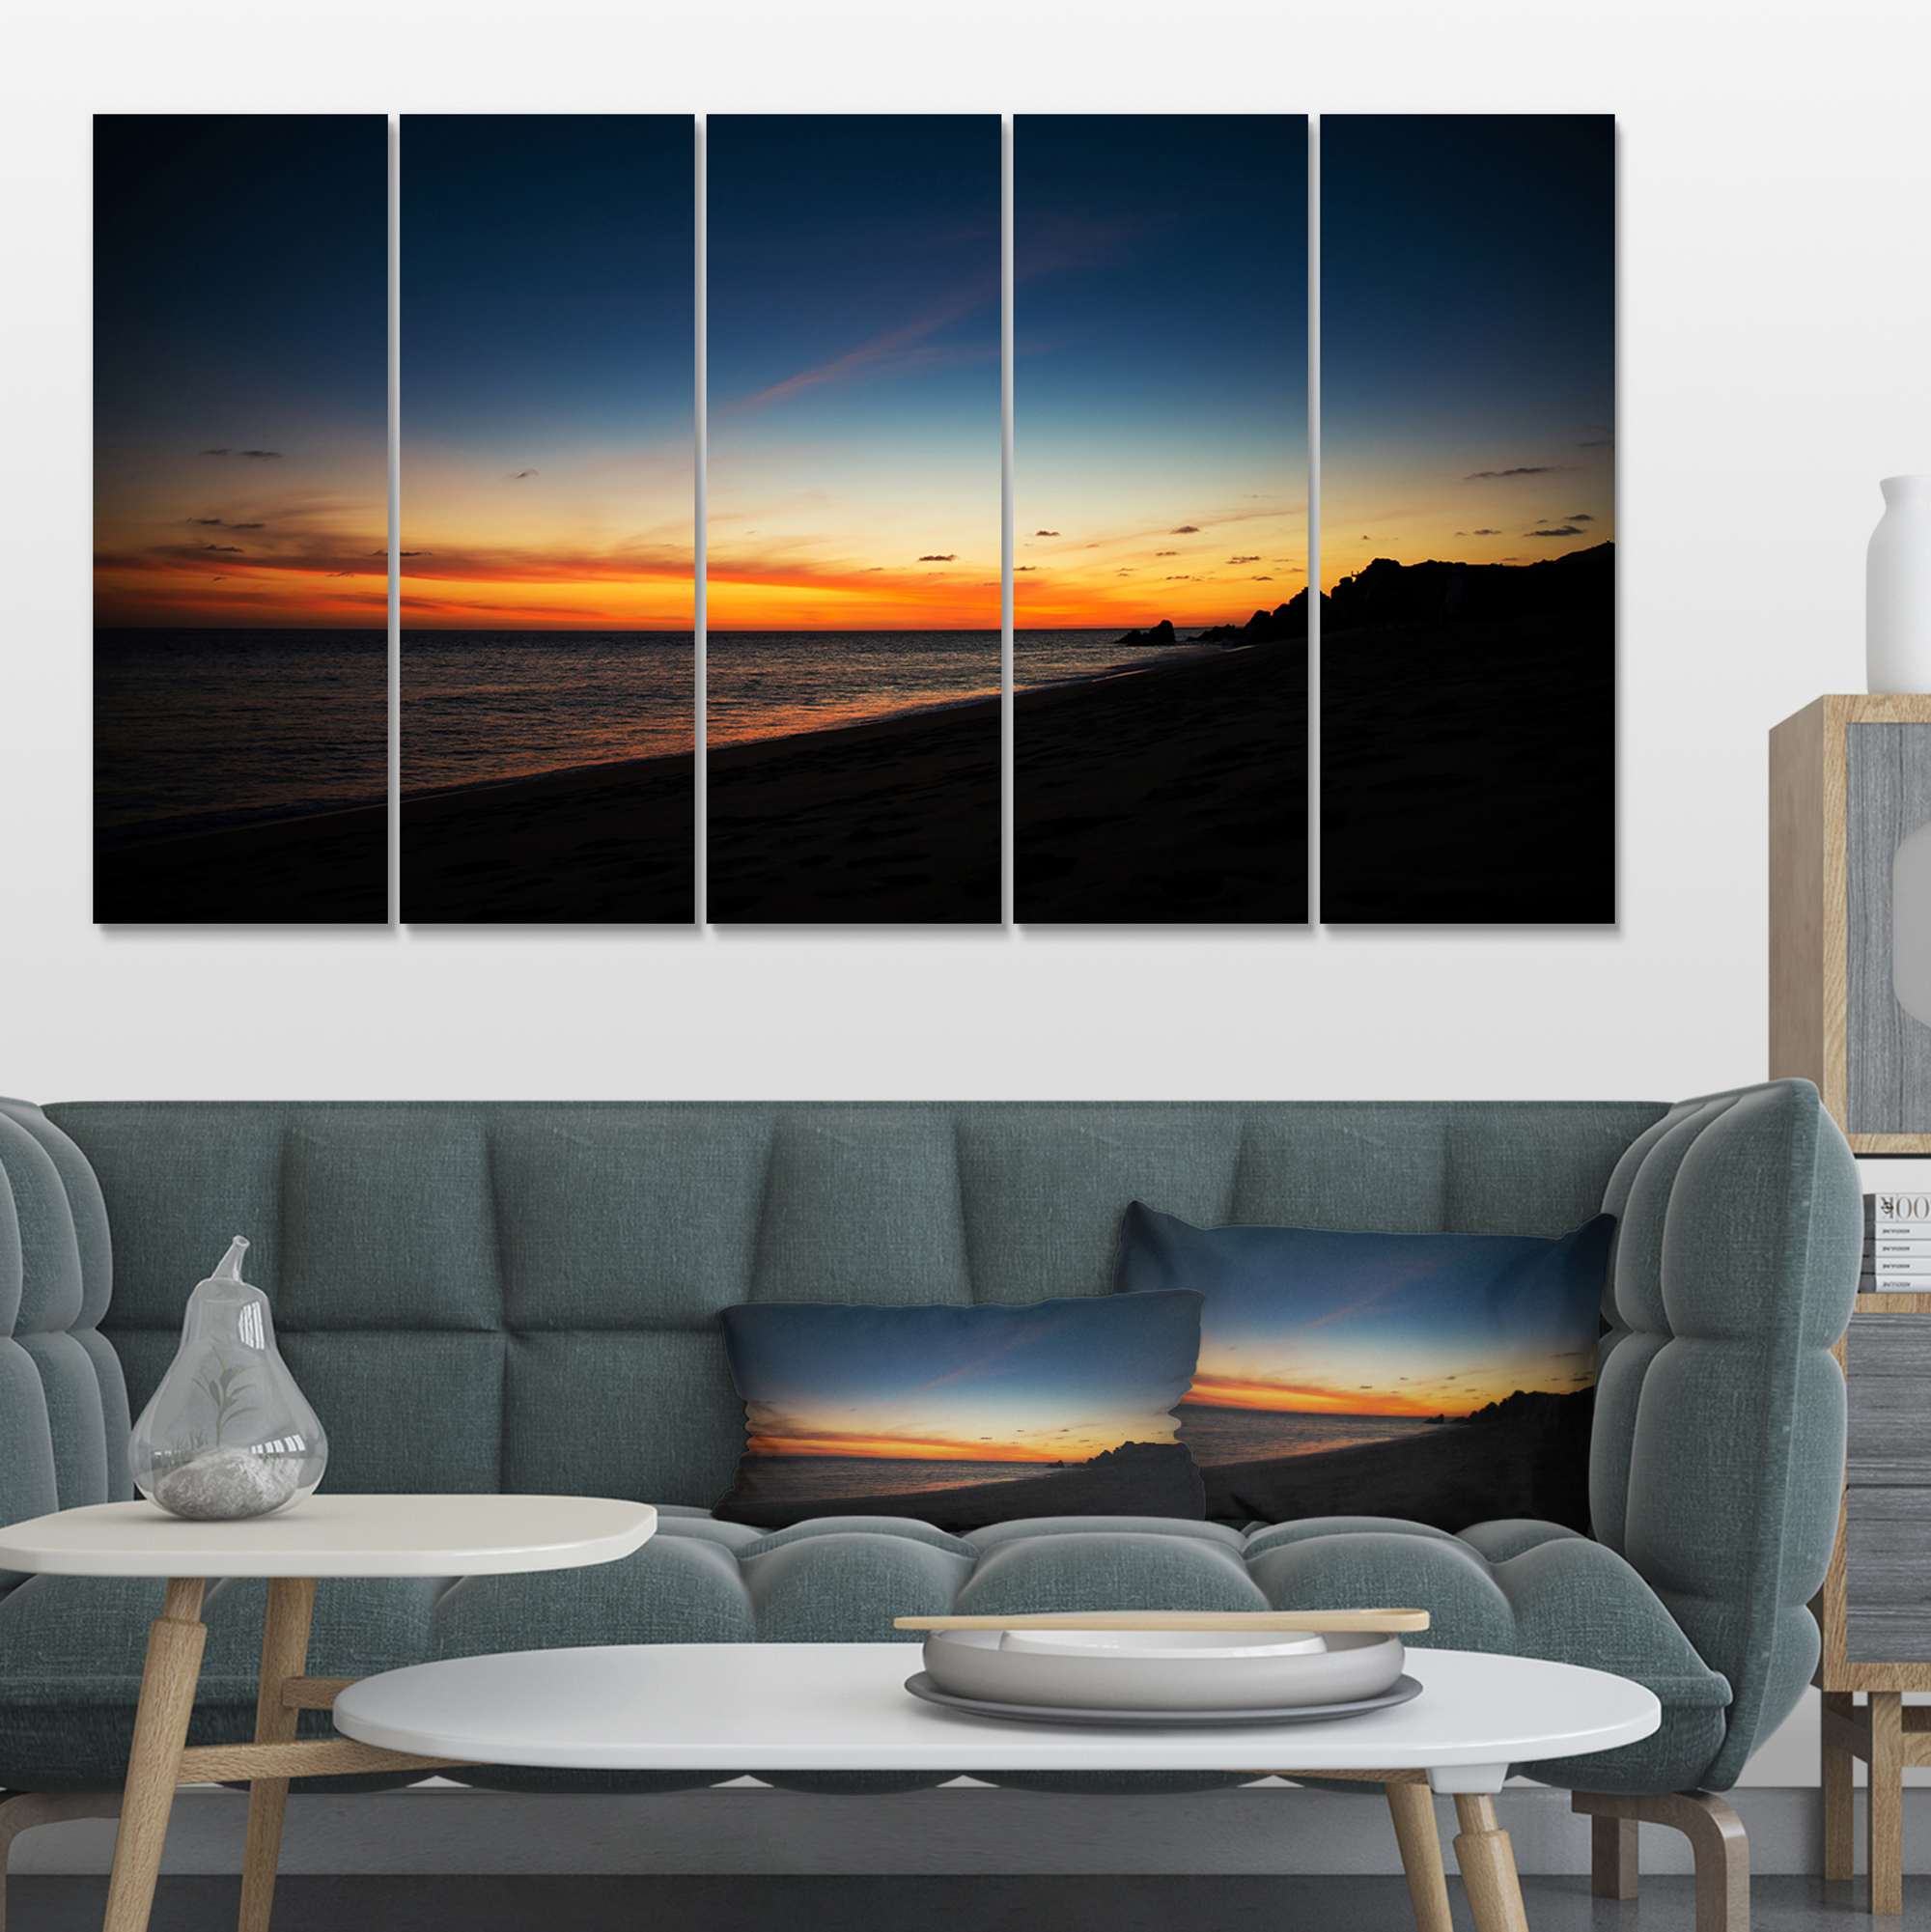 Sunset Over Beach in Cabo St.Lucas - Landscape Canvas Art Print - image 4 of 4